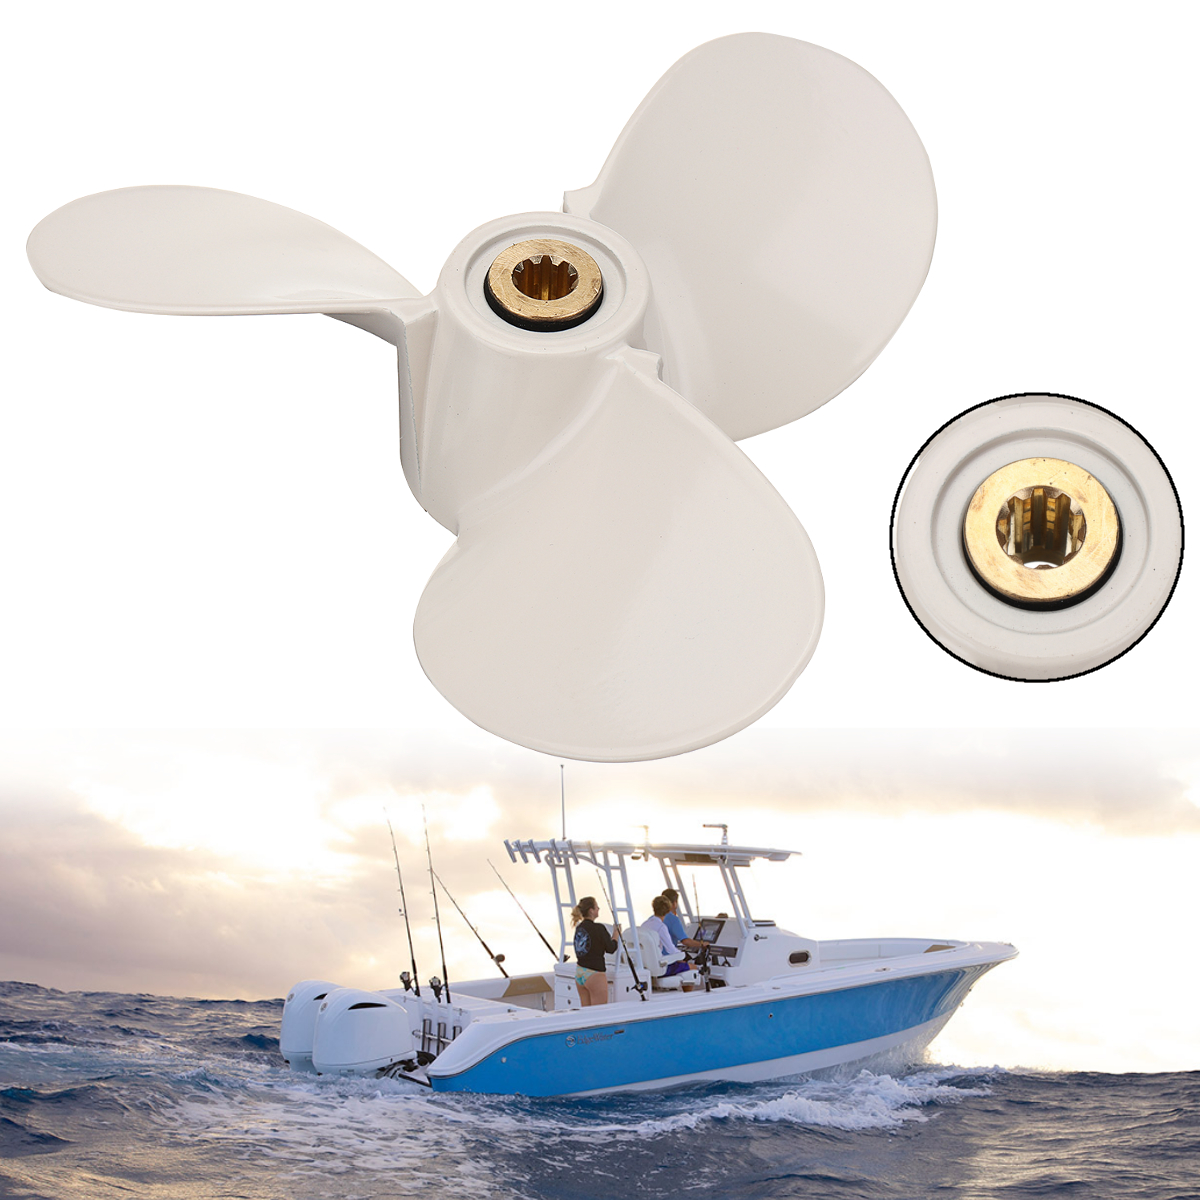 6E0-45941-01-EL For Yamaha Mariner 4-6HP 190mm 8-BA Aluminum Alloy Outboard Propeller White 3 Blades 9 Spline Tooth Boat Parts цены онлайн